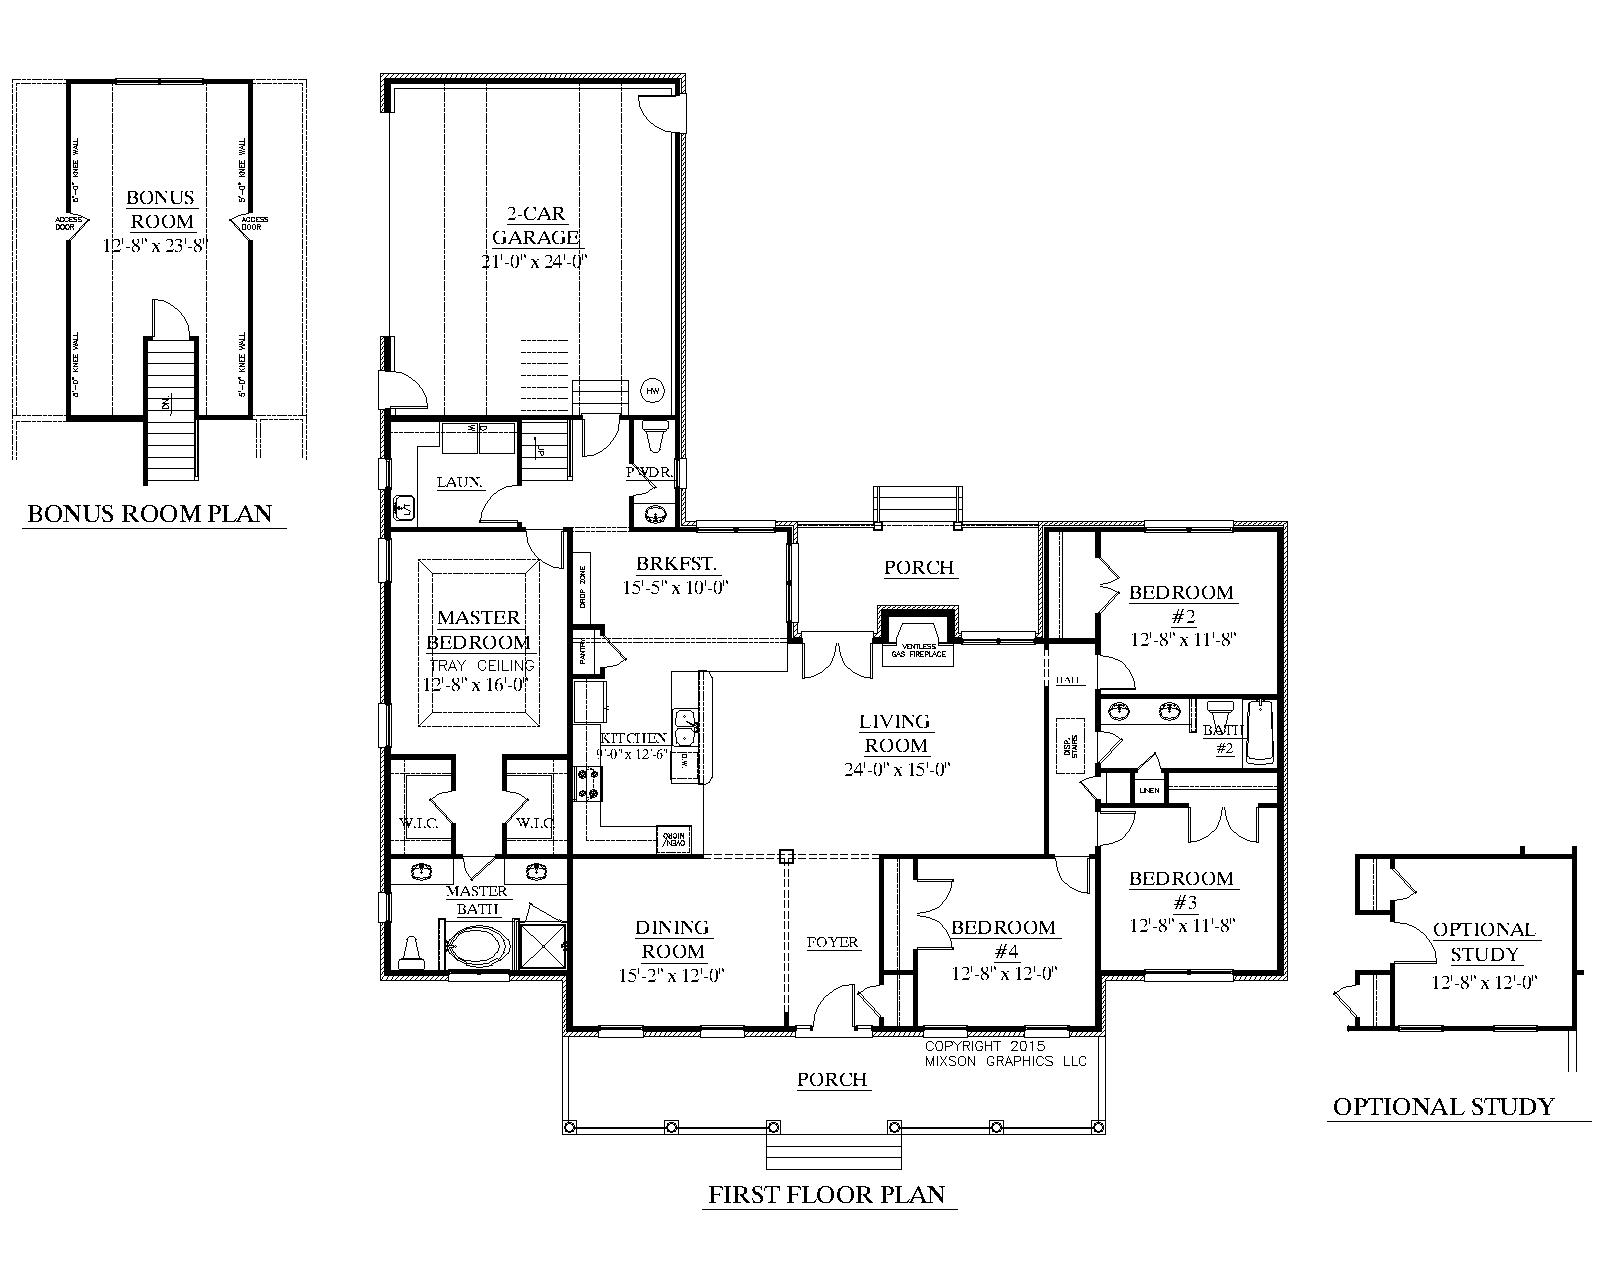 House plan 2224 2 b the birchwood b floor plan beautiful for One story house plans with bonus room above garage